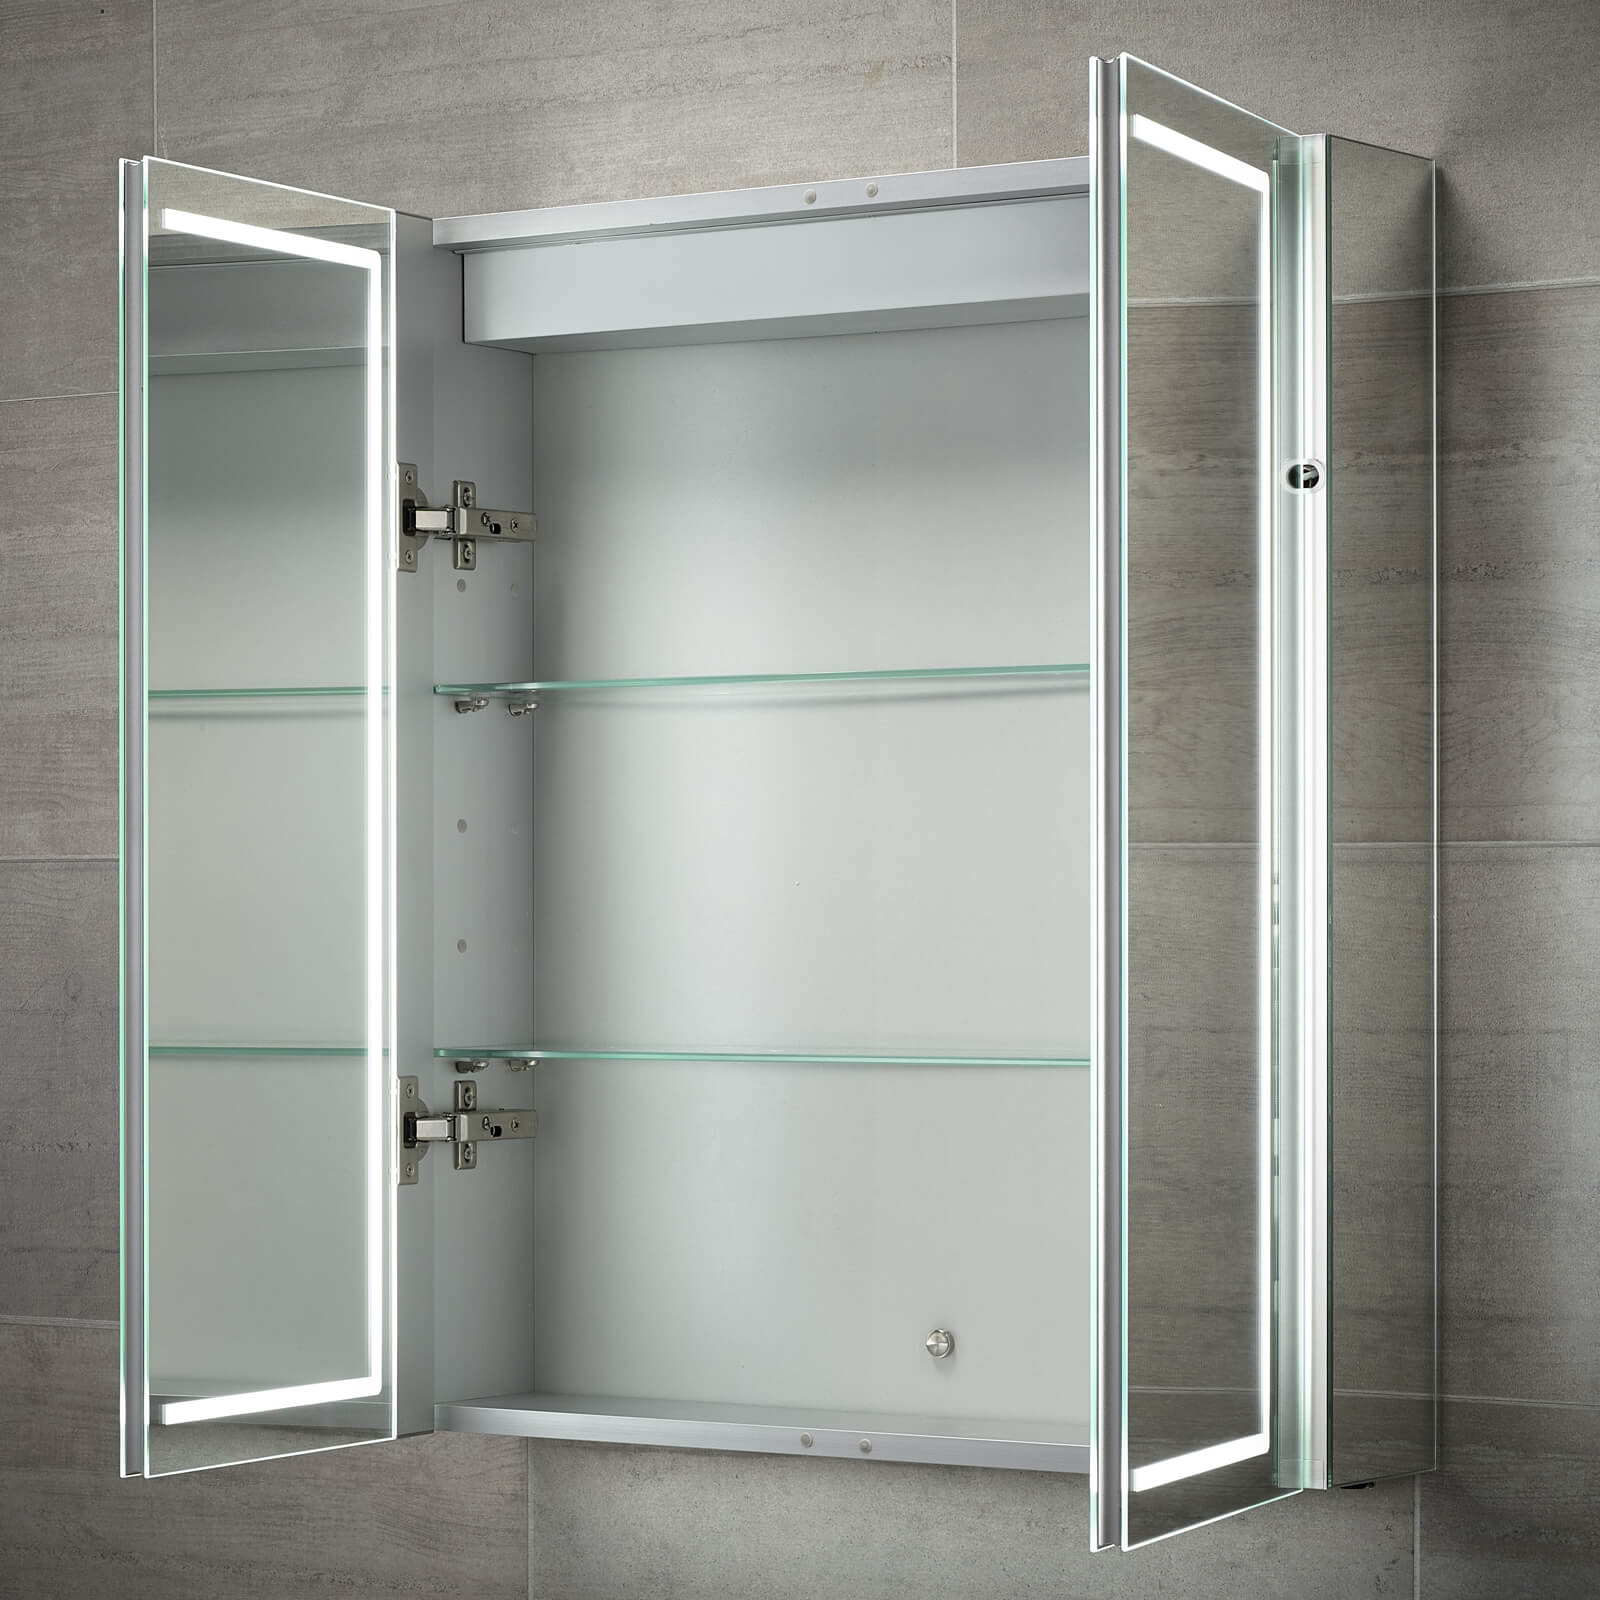 Sensio Sonnet 600 X 700mm Illuminated Led Double Door